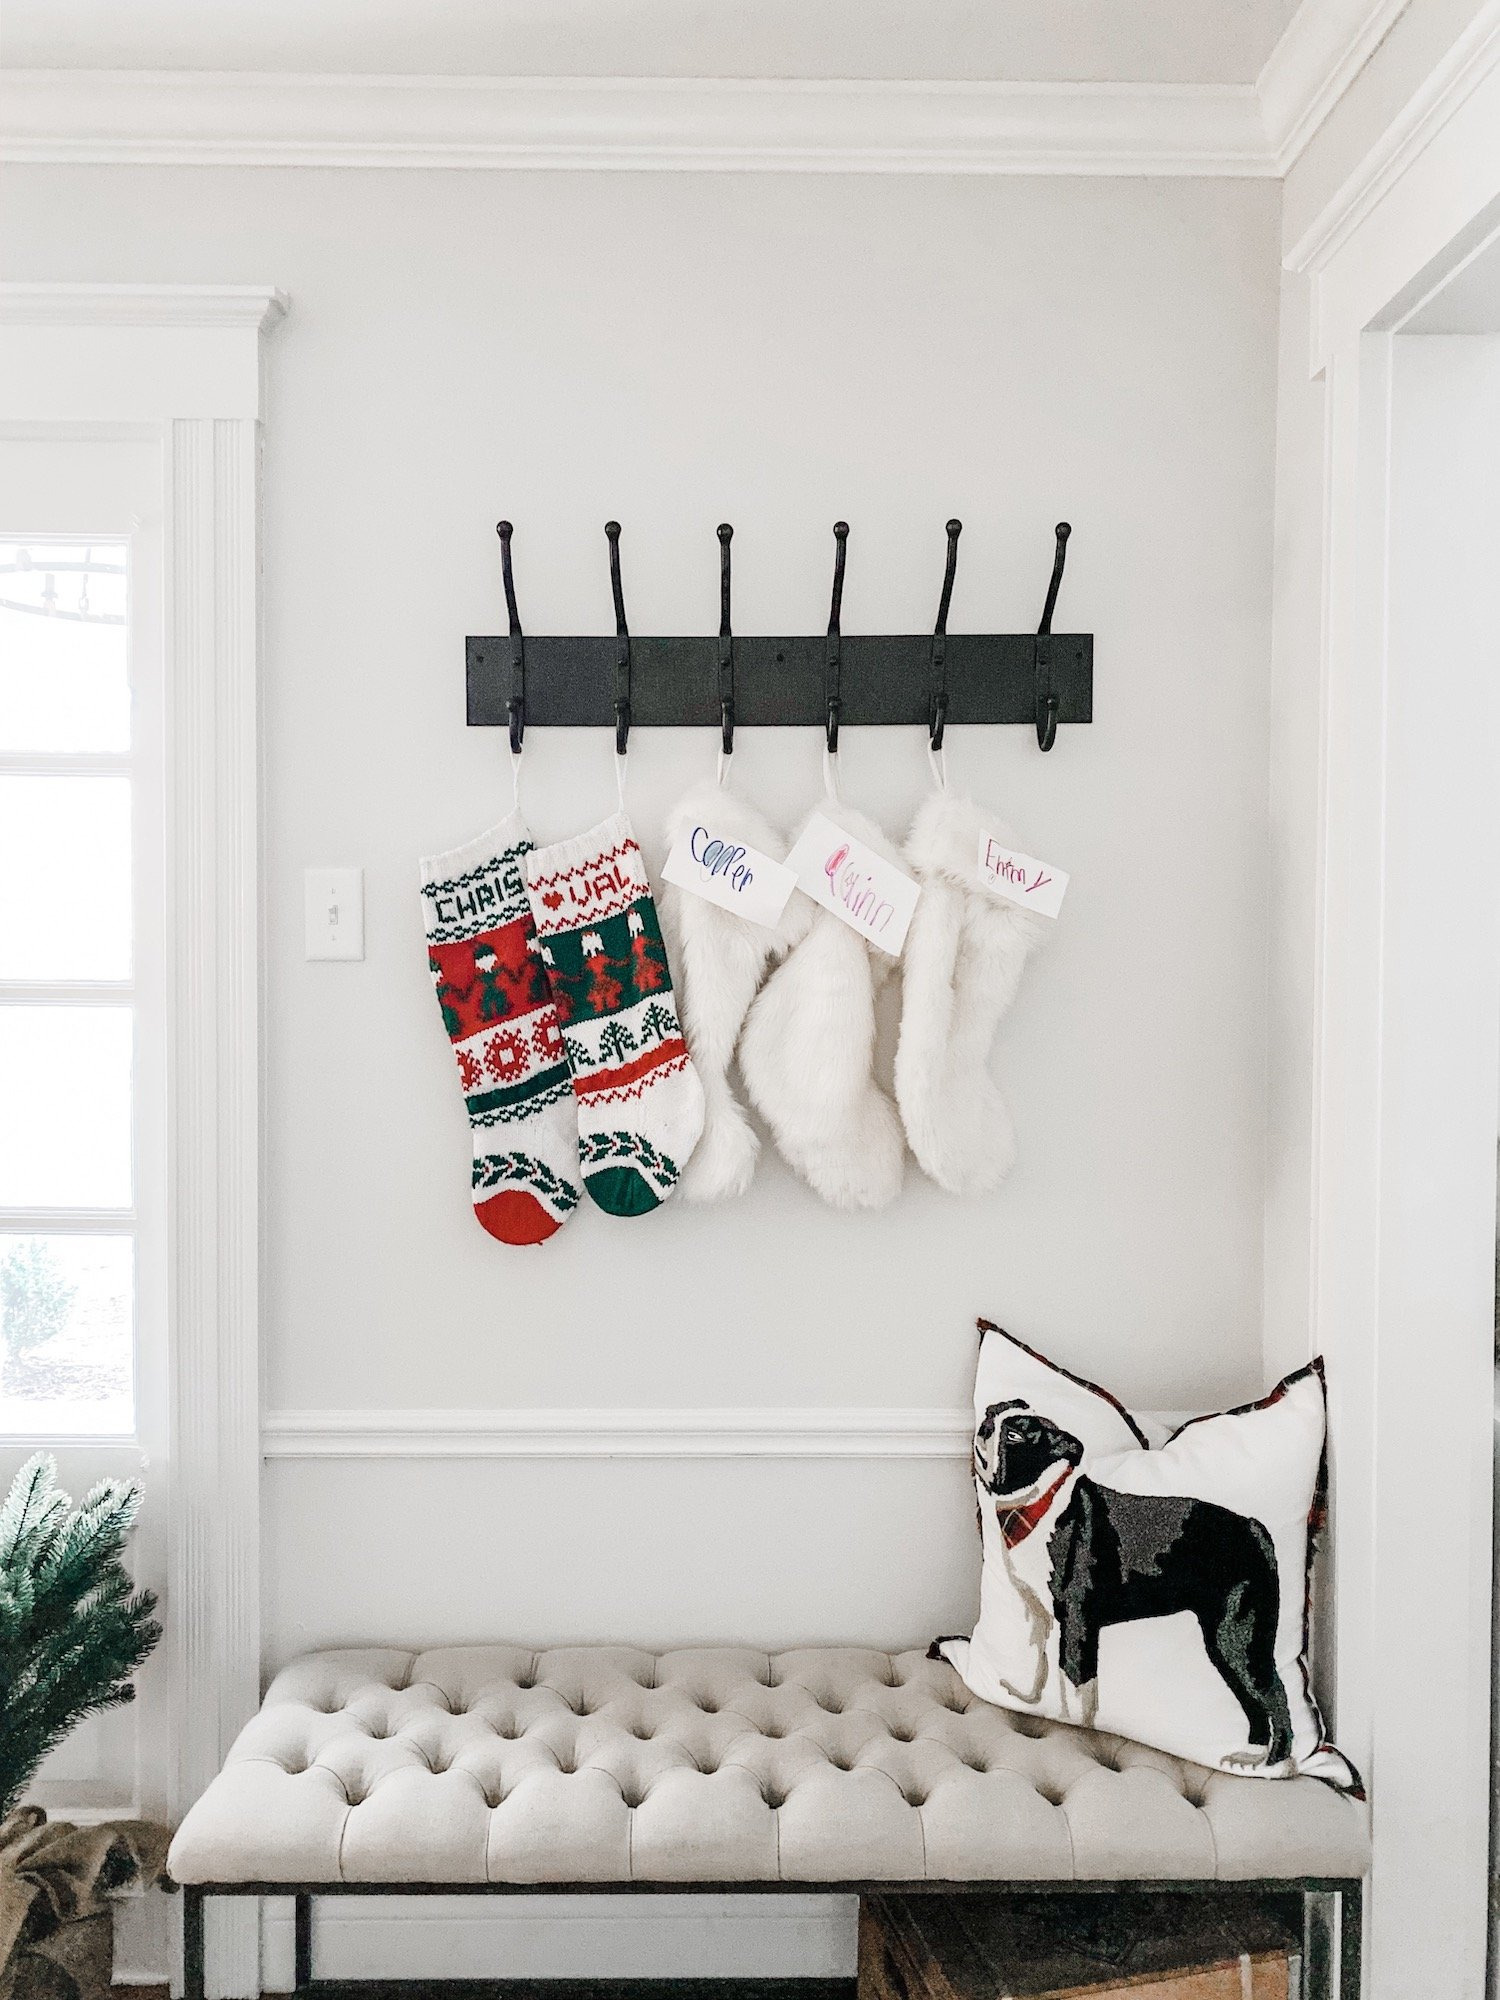 Stocking hung in our entryway